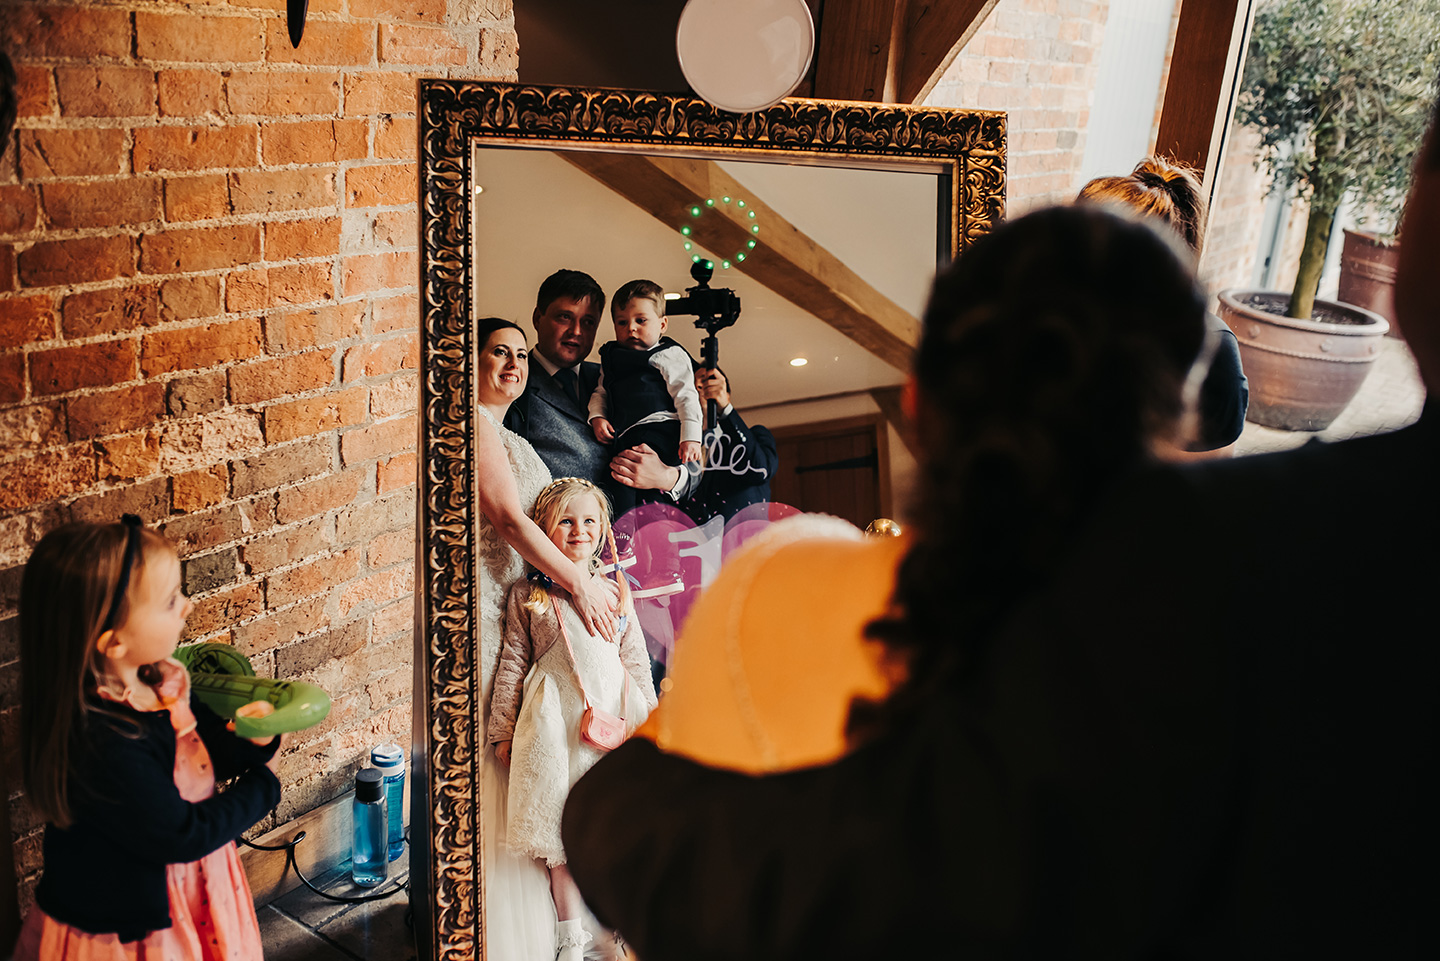 Wedding entertainment for guests included a Magic Mirror